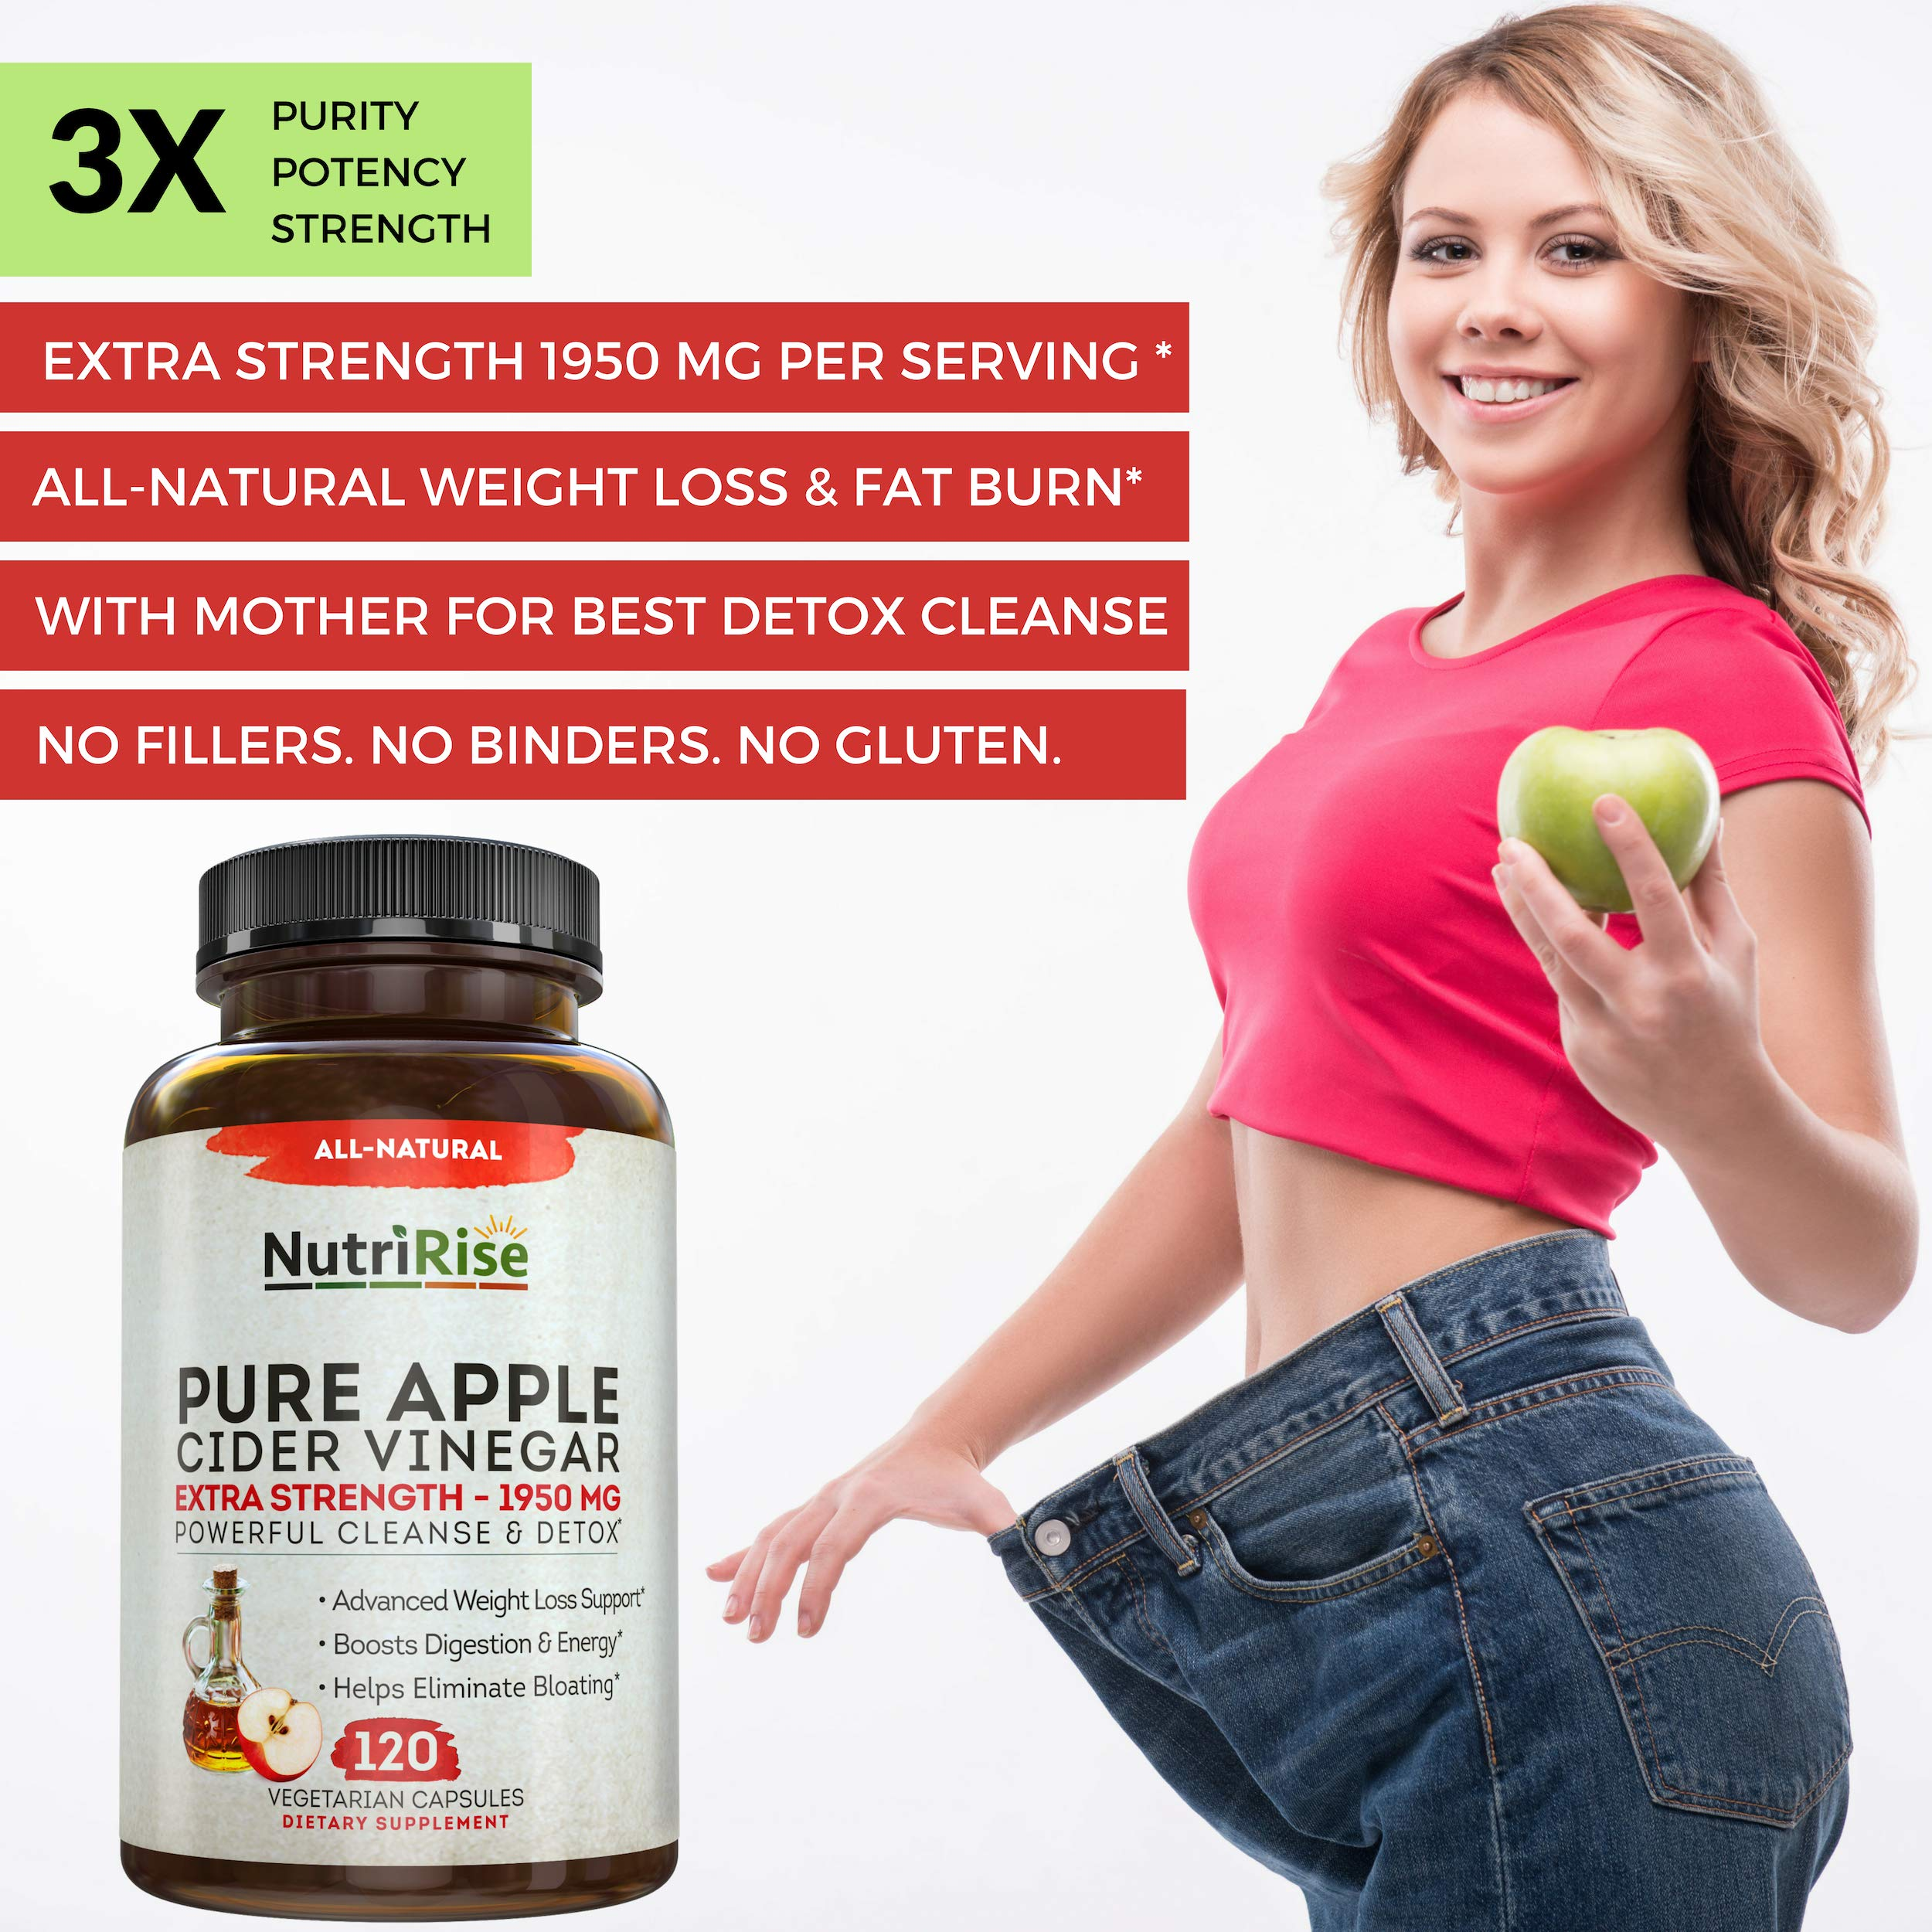 Apple Cider Vinegar Capsules for Weight Loss & Cleanse - 100% Pure Extra Strength 1950mg - 120 Natural Diet Pills for Women & Men for Bloating & Constipation Relief, Digestion & Energy Boost by NutriRise (Image #3)